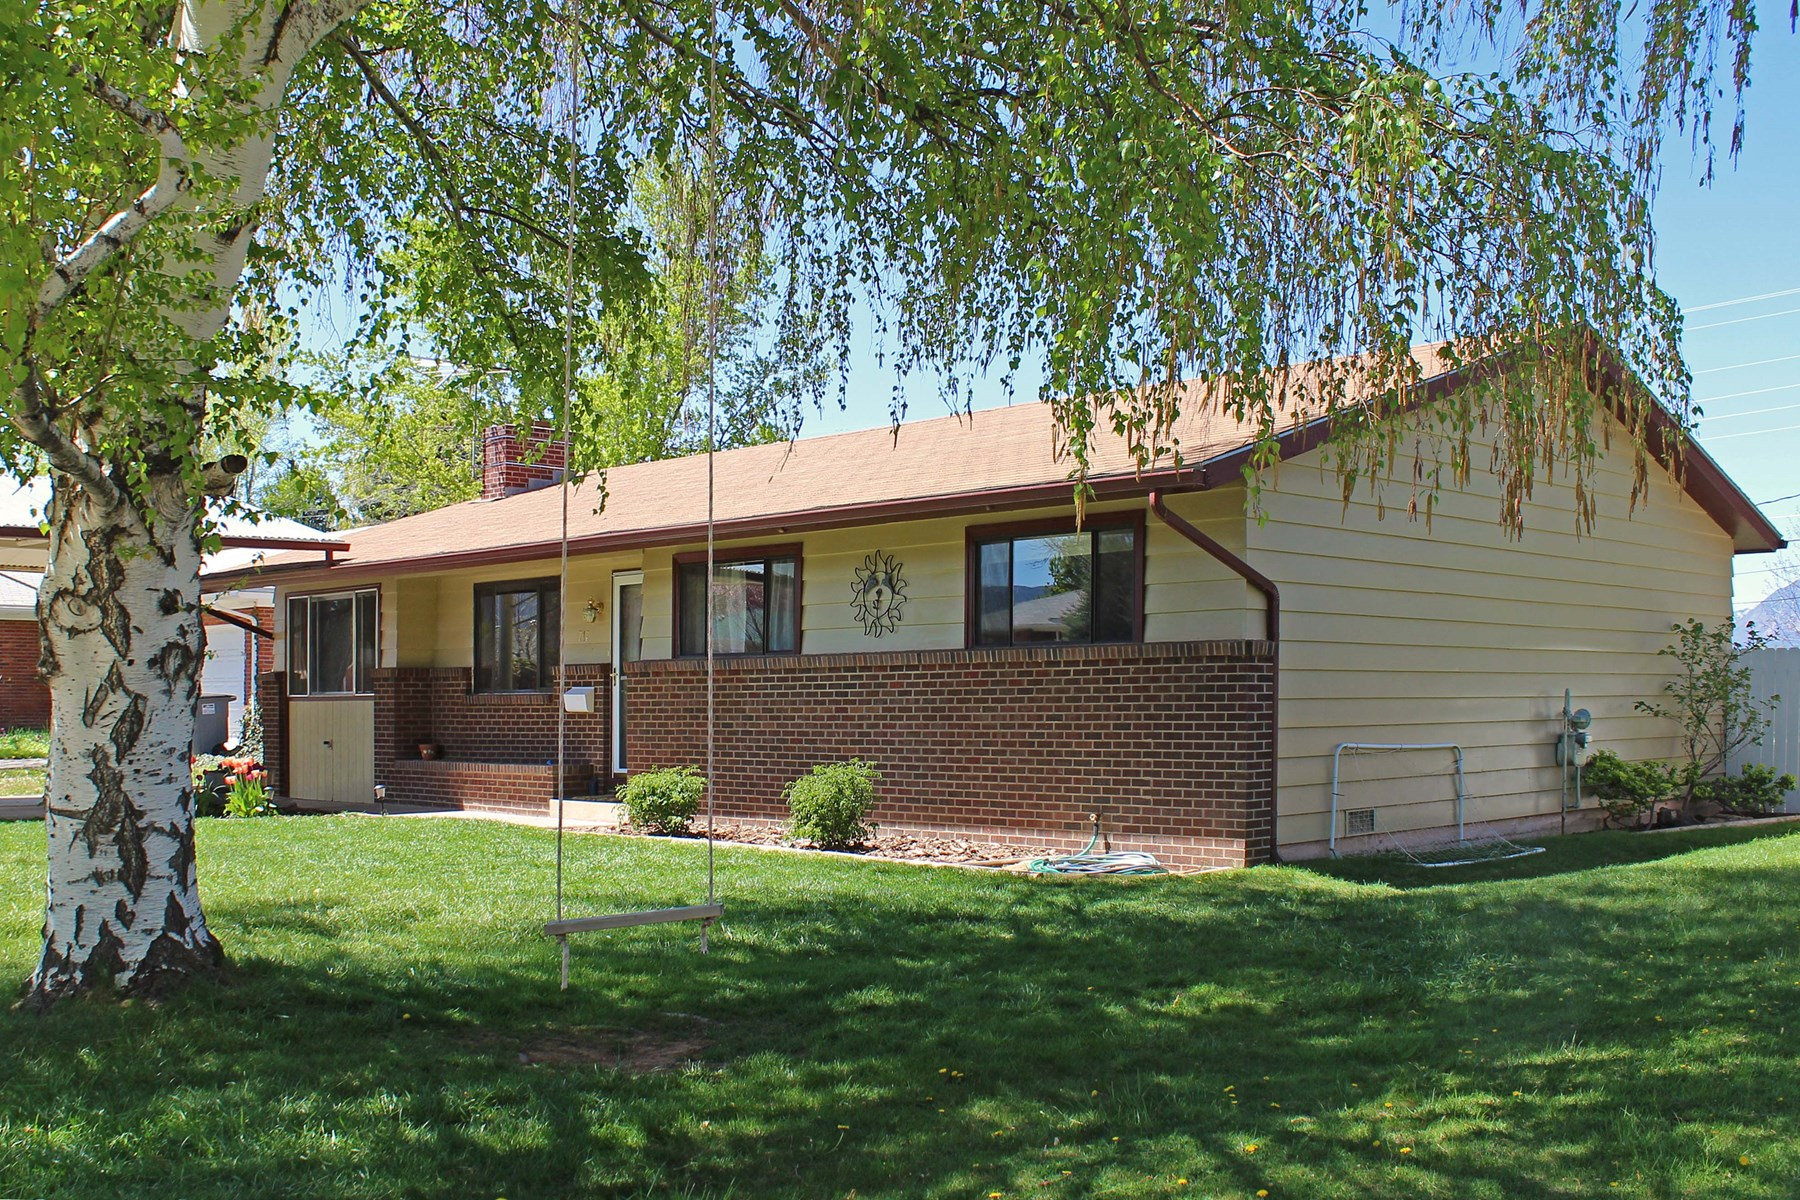 Terrific location for this well cared for 3 bedroom/2 bath